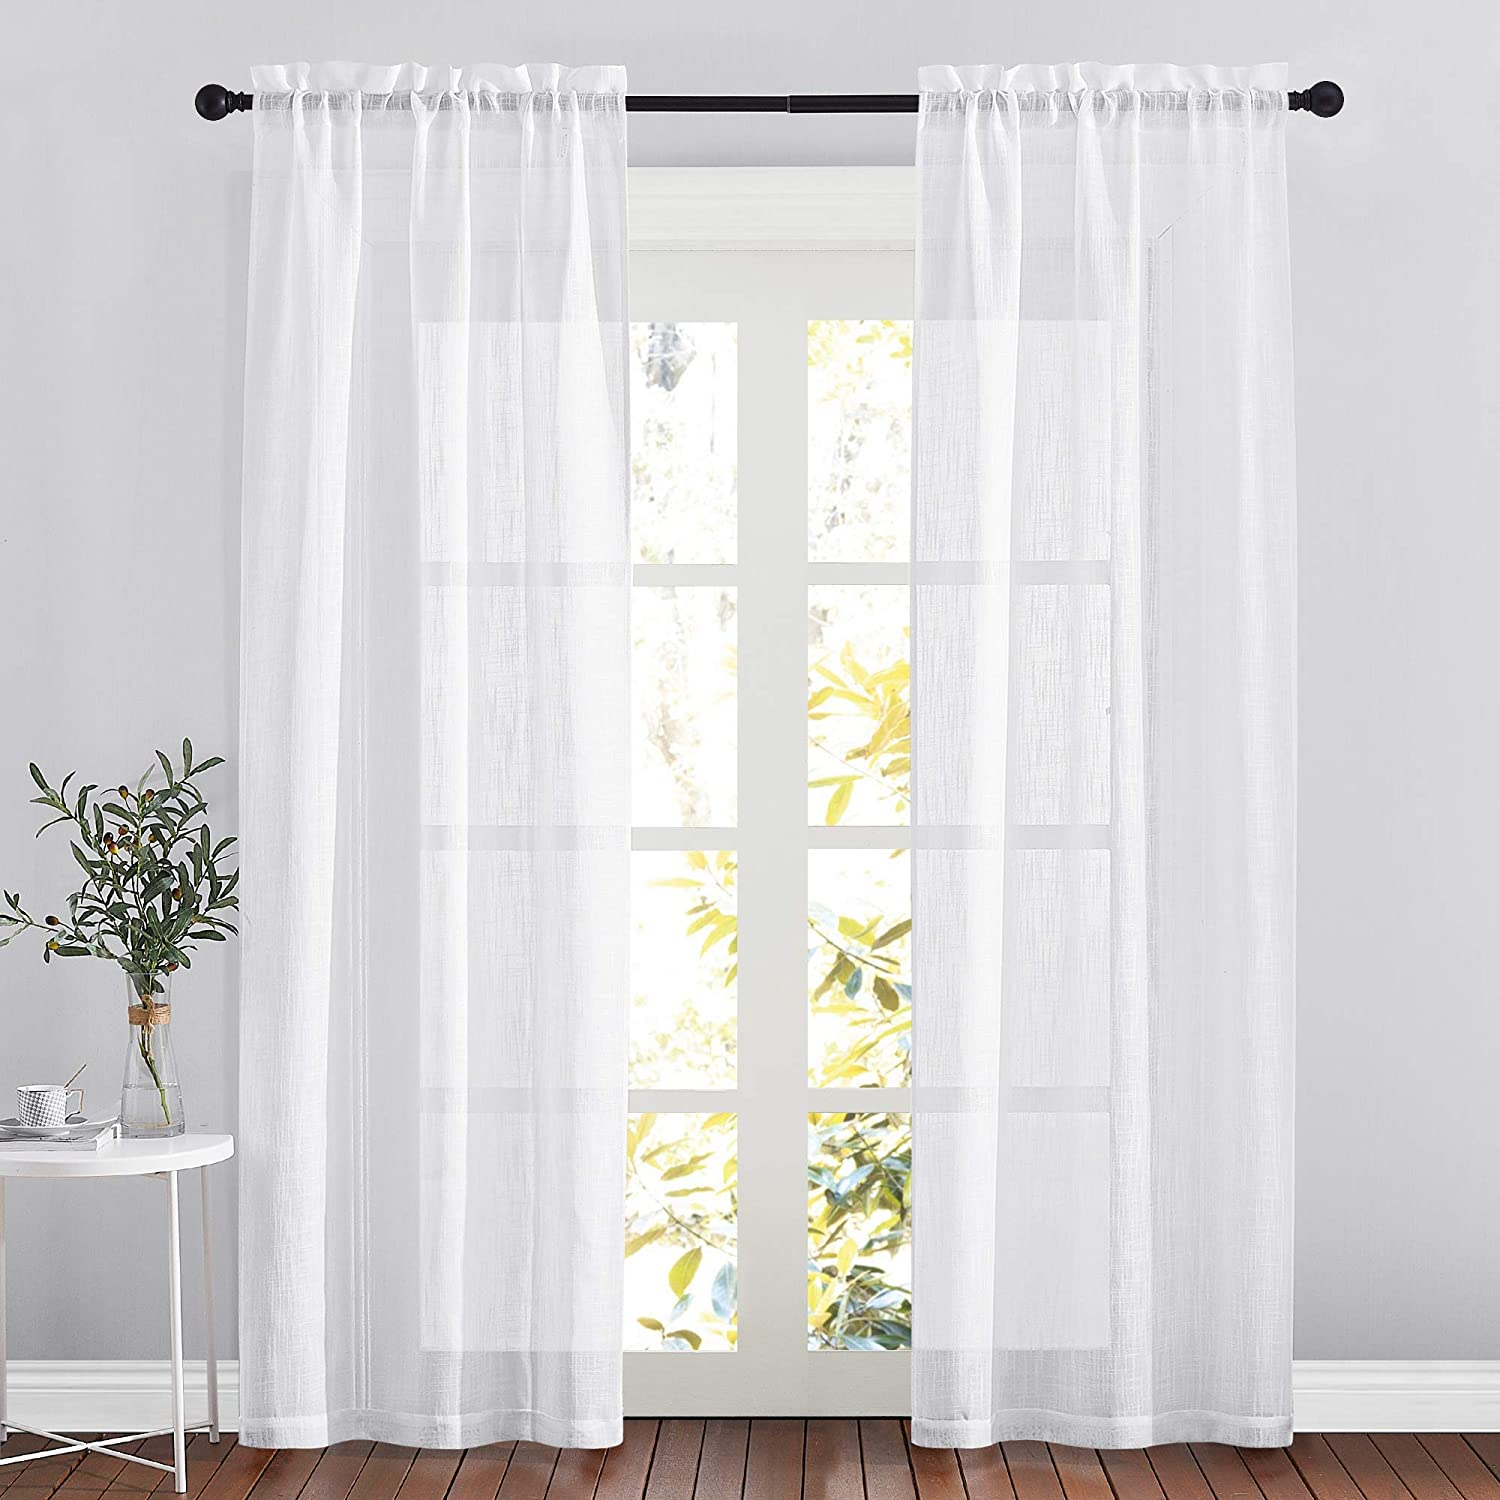 RYB HOME White Curtains Linen Textured Blend Semi Sheer Curtains Farmhouse Window Decor for Patio Door Living Room Bedroom Home Office, White, W 34 x L 95 inch, 2 Pcs